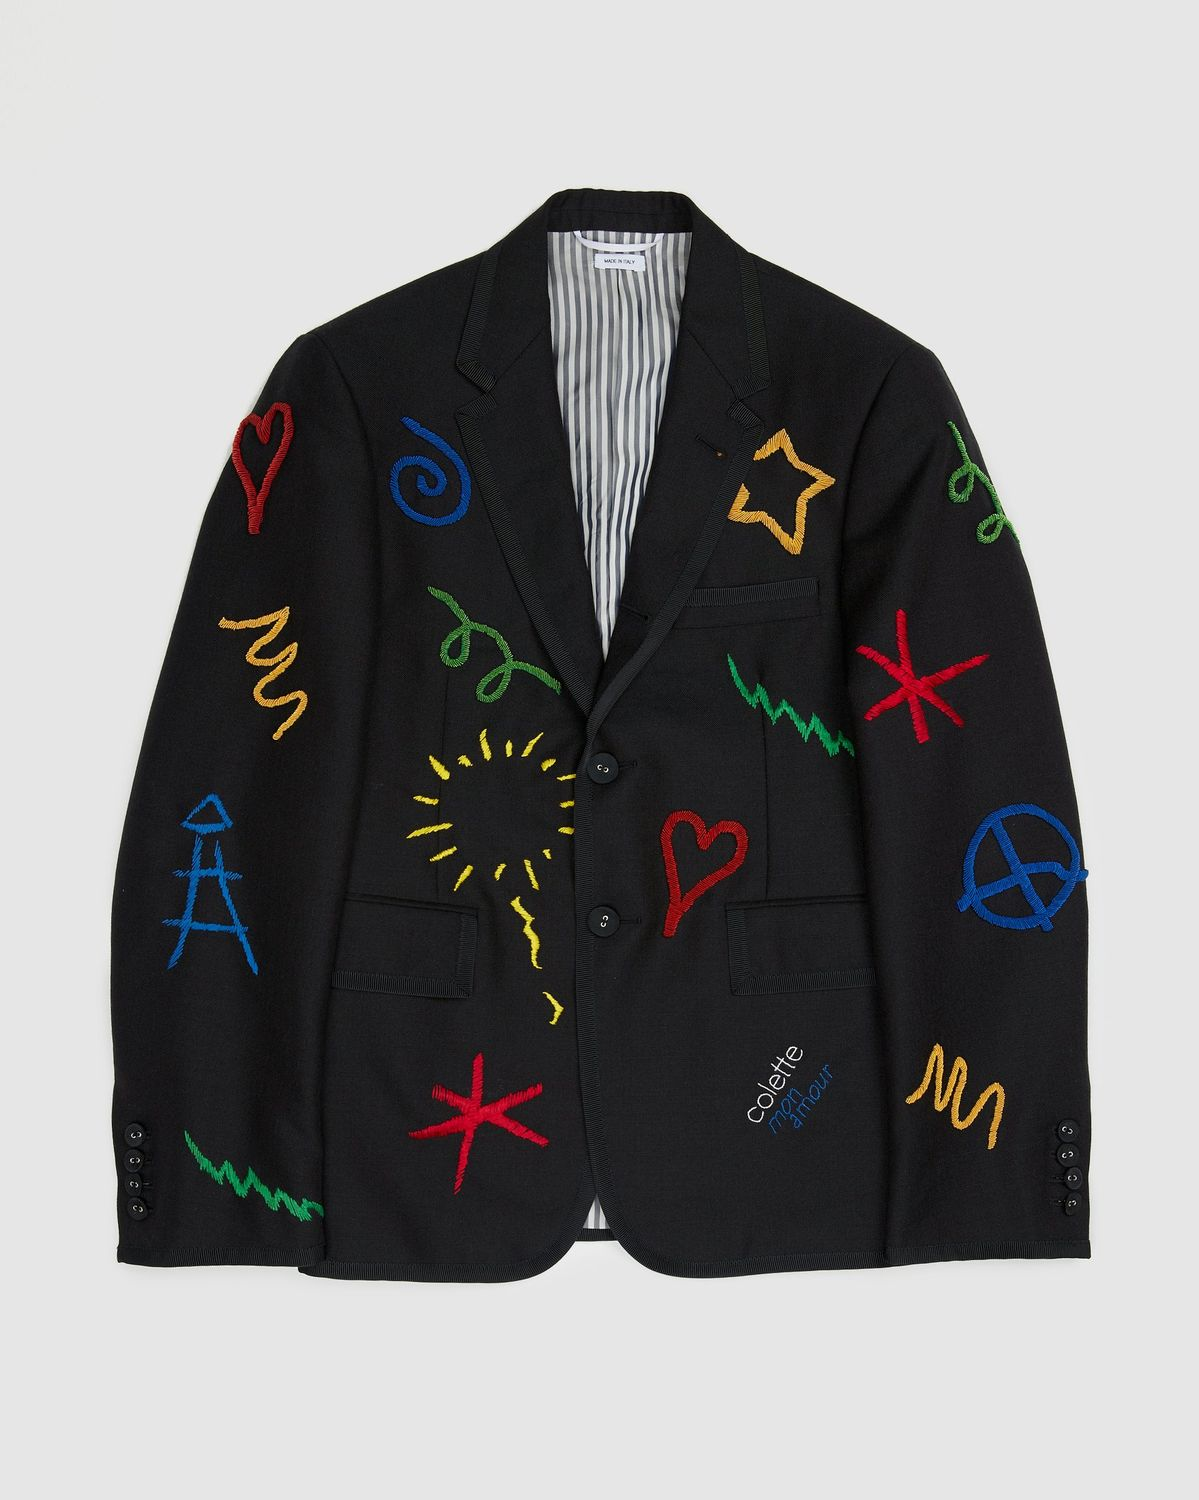 Colette Mon Amour x Thom Browne — Black Embroidered Tux Suit - Image 3